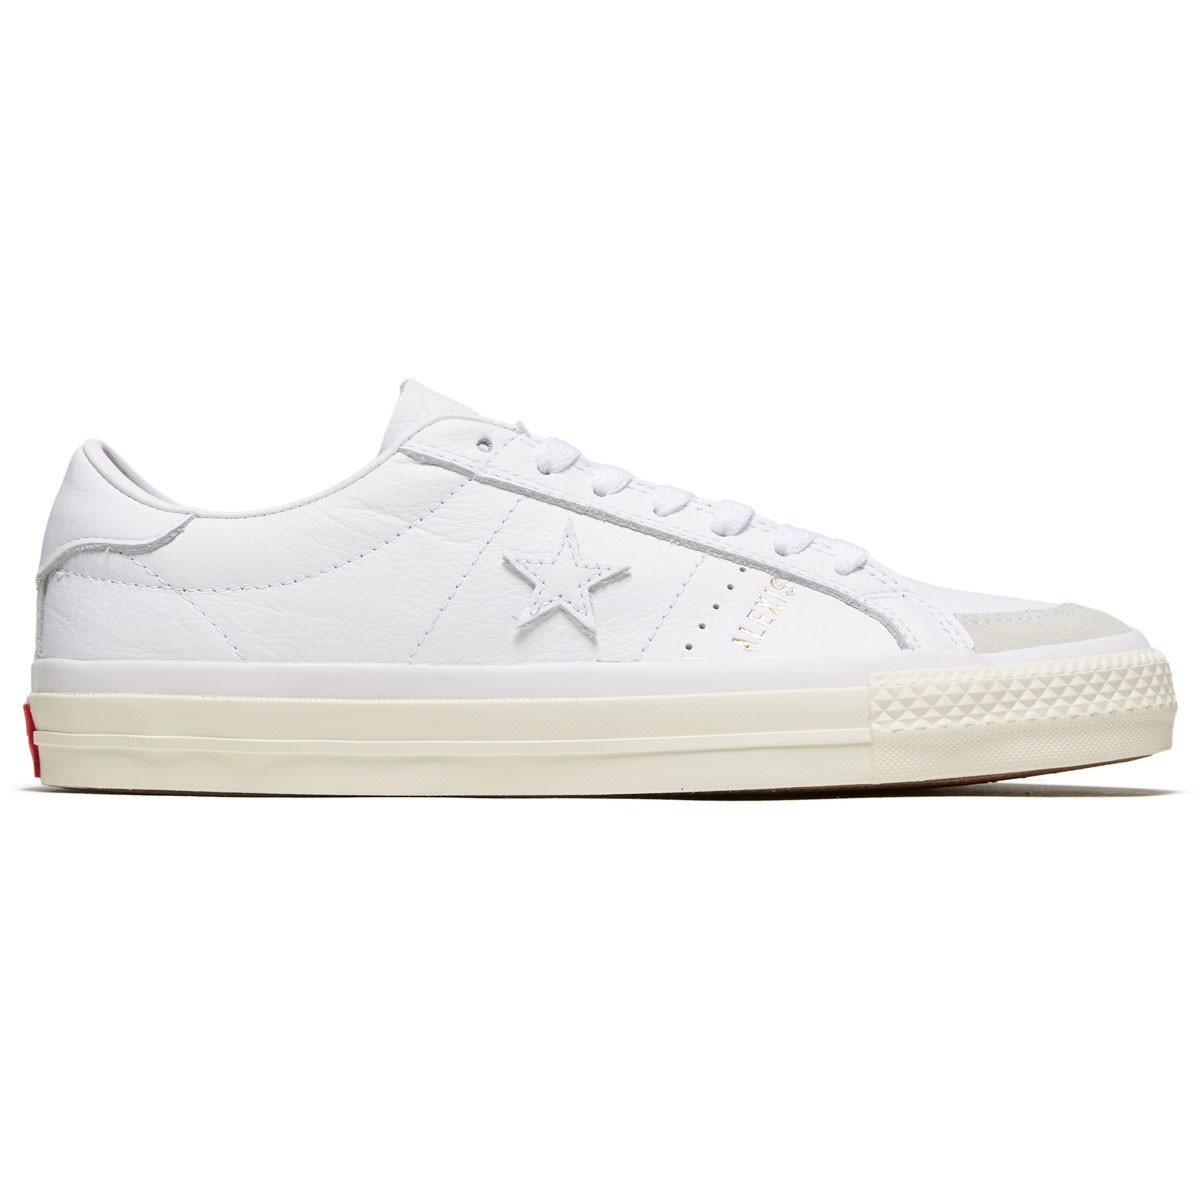 Converse One Star Pro Sablone Ox Shoes